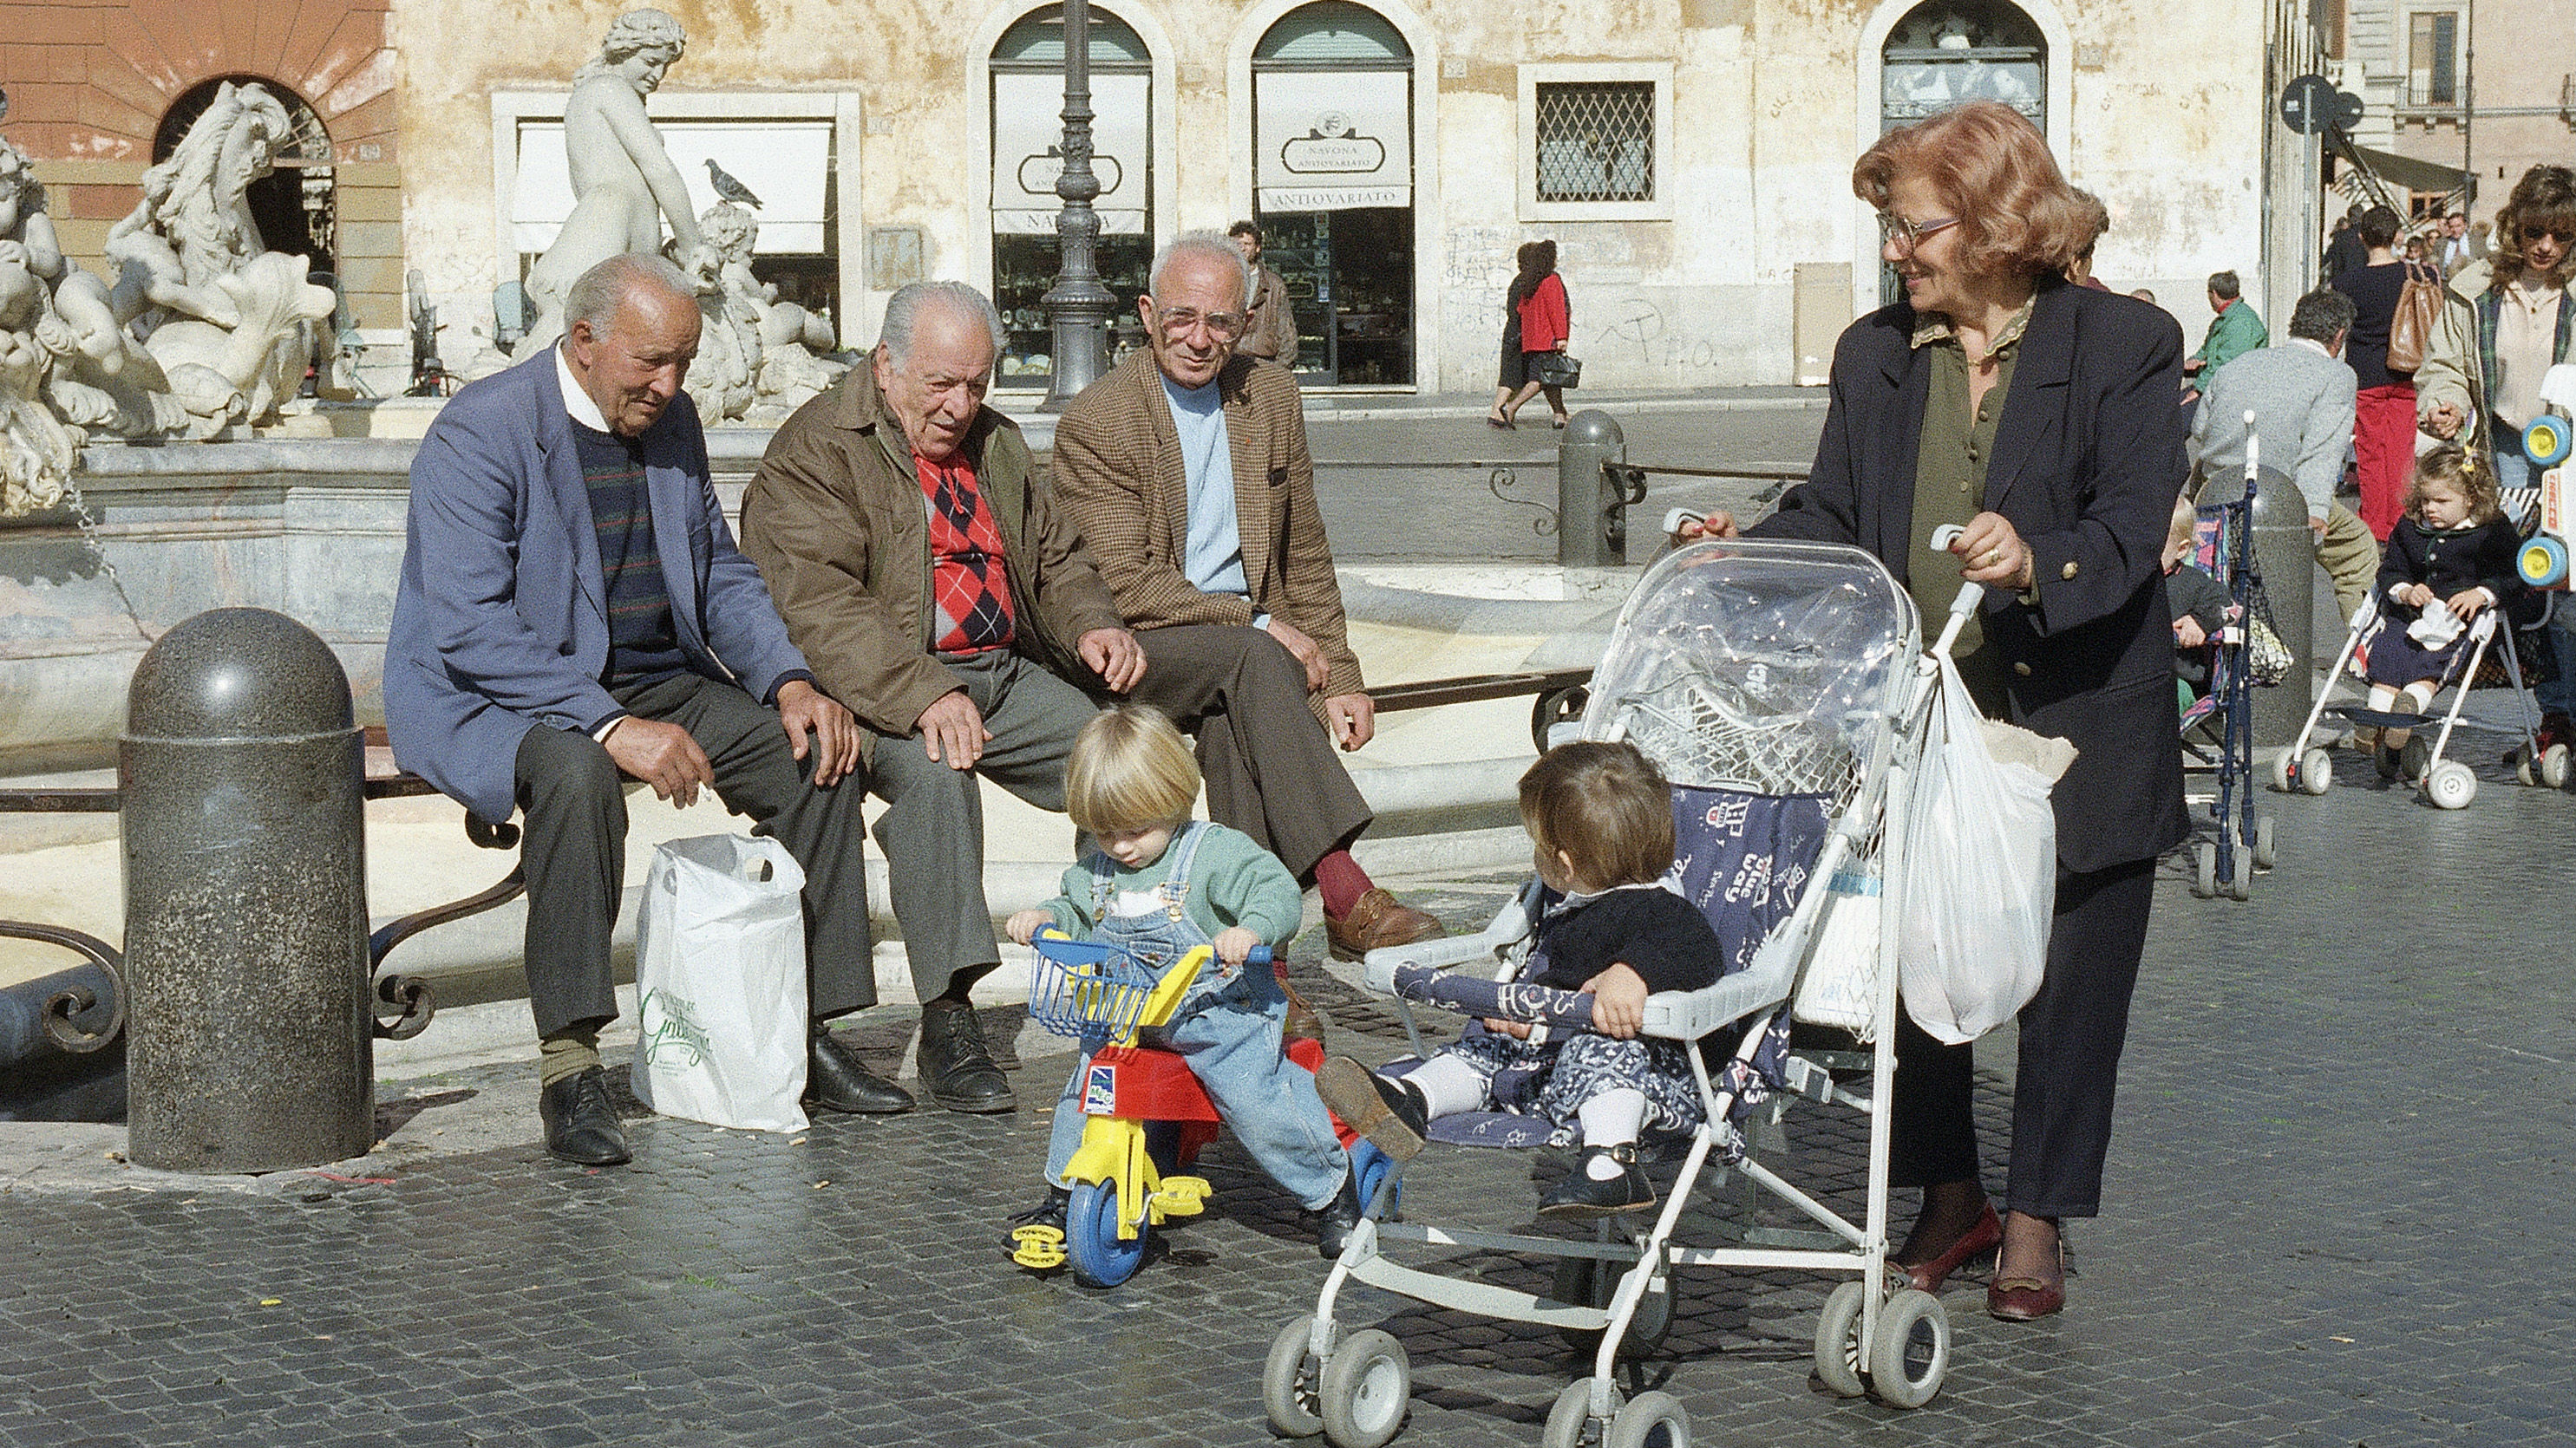 """A grandmother takes several """" baminos"""" for a stroll in Rome's fashionable piazza Navona on oct. 27, 1993. As the Italian government provides little in the way of child care, working parents often must rely on grandparents to tend the kids. The difficulties and expense of raising children may account for Italy's low birth rate, according to sociologists. (AP PhotoGiulio Broglio)"""